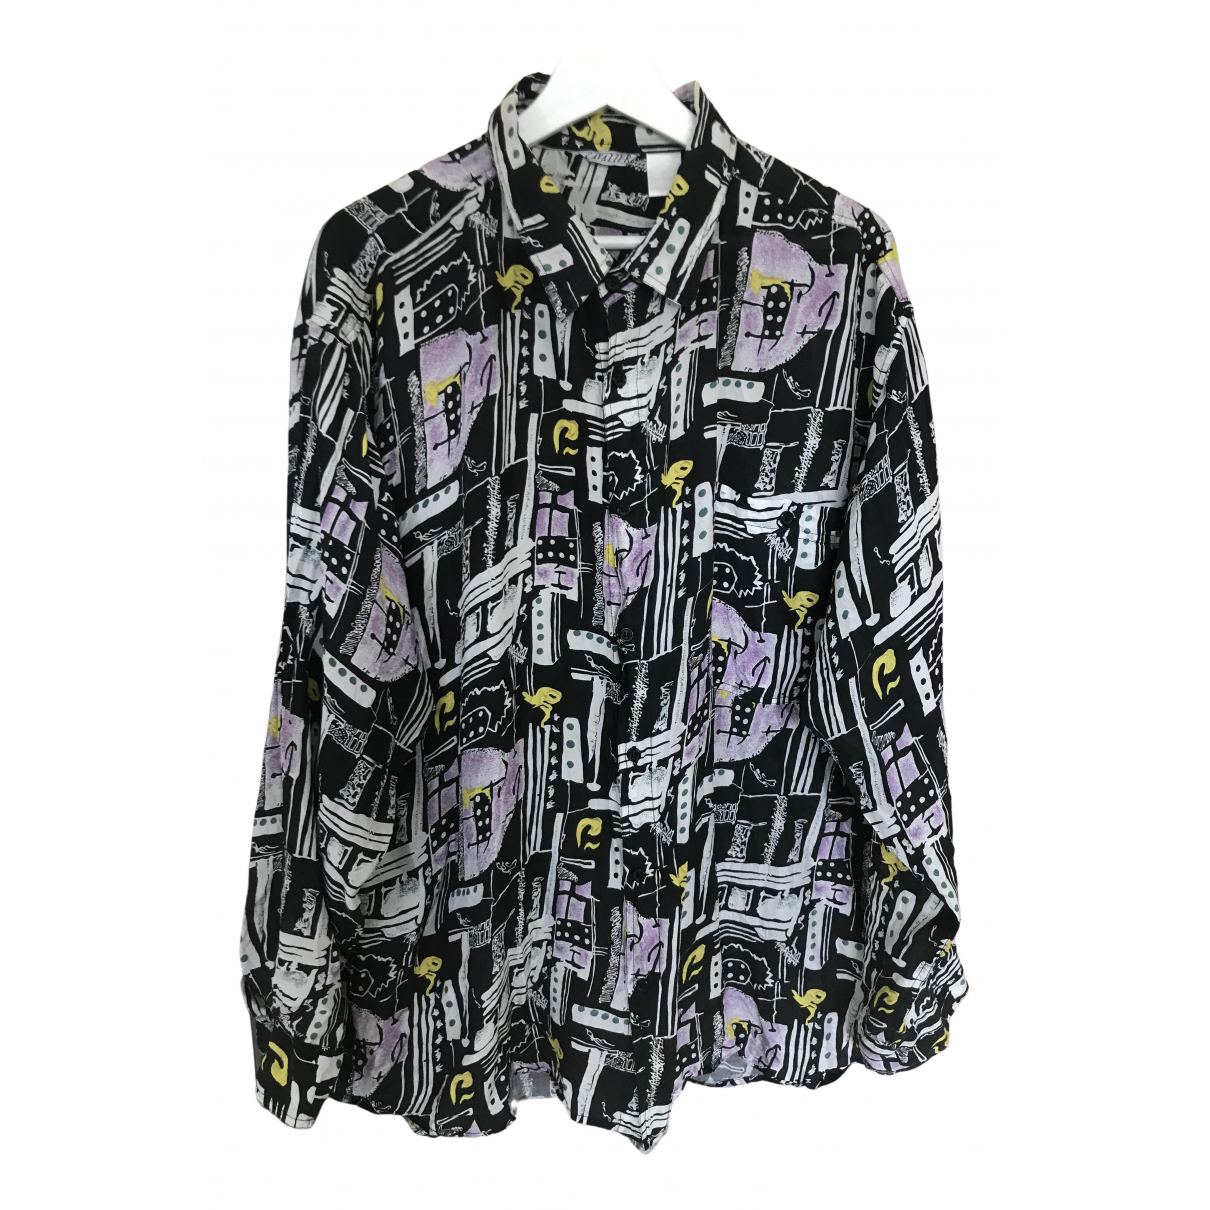 Non Signé / Unsigned Oversize Black Shirts for Men XL International